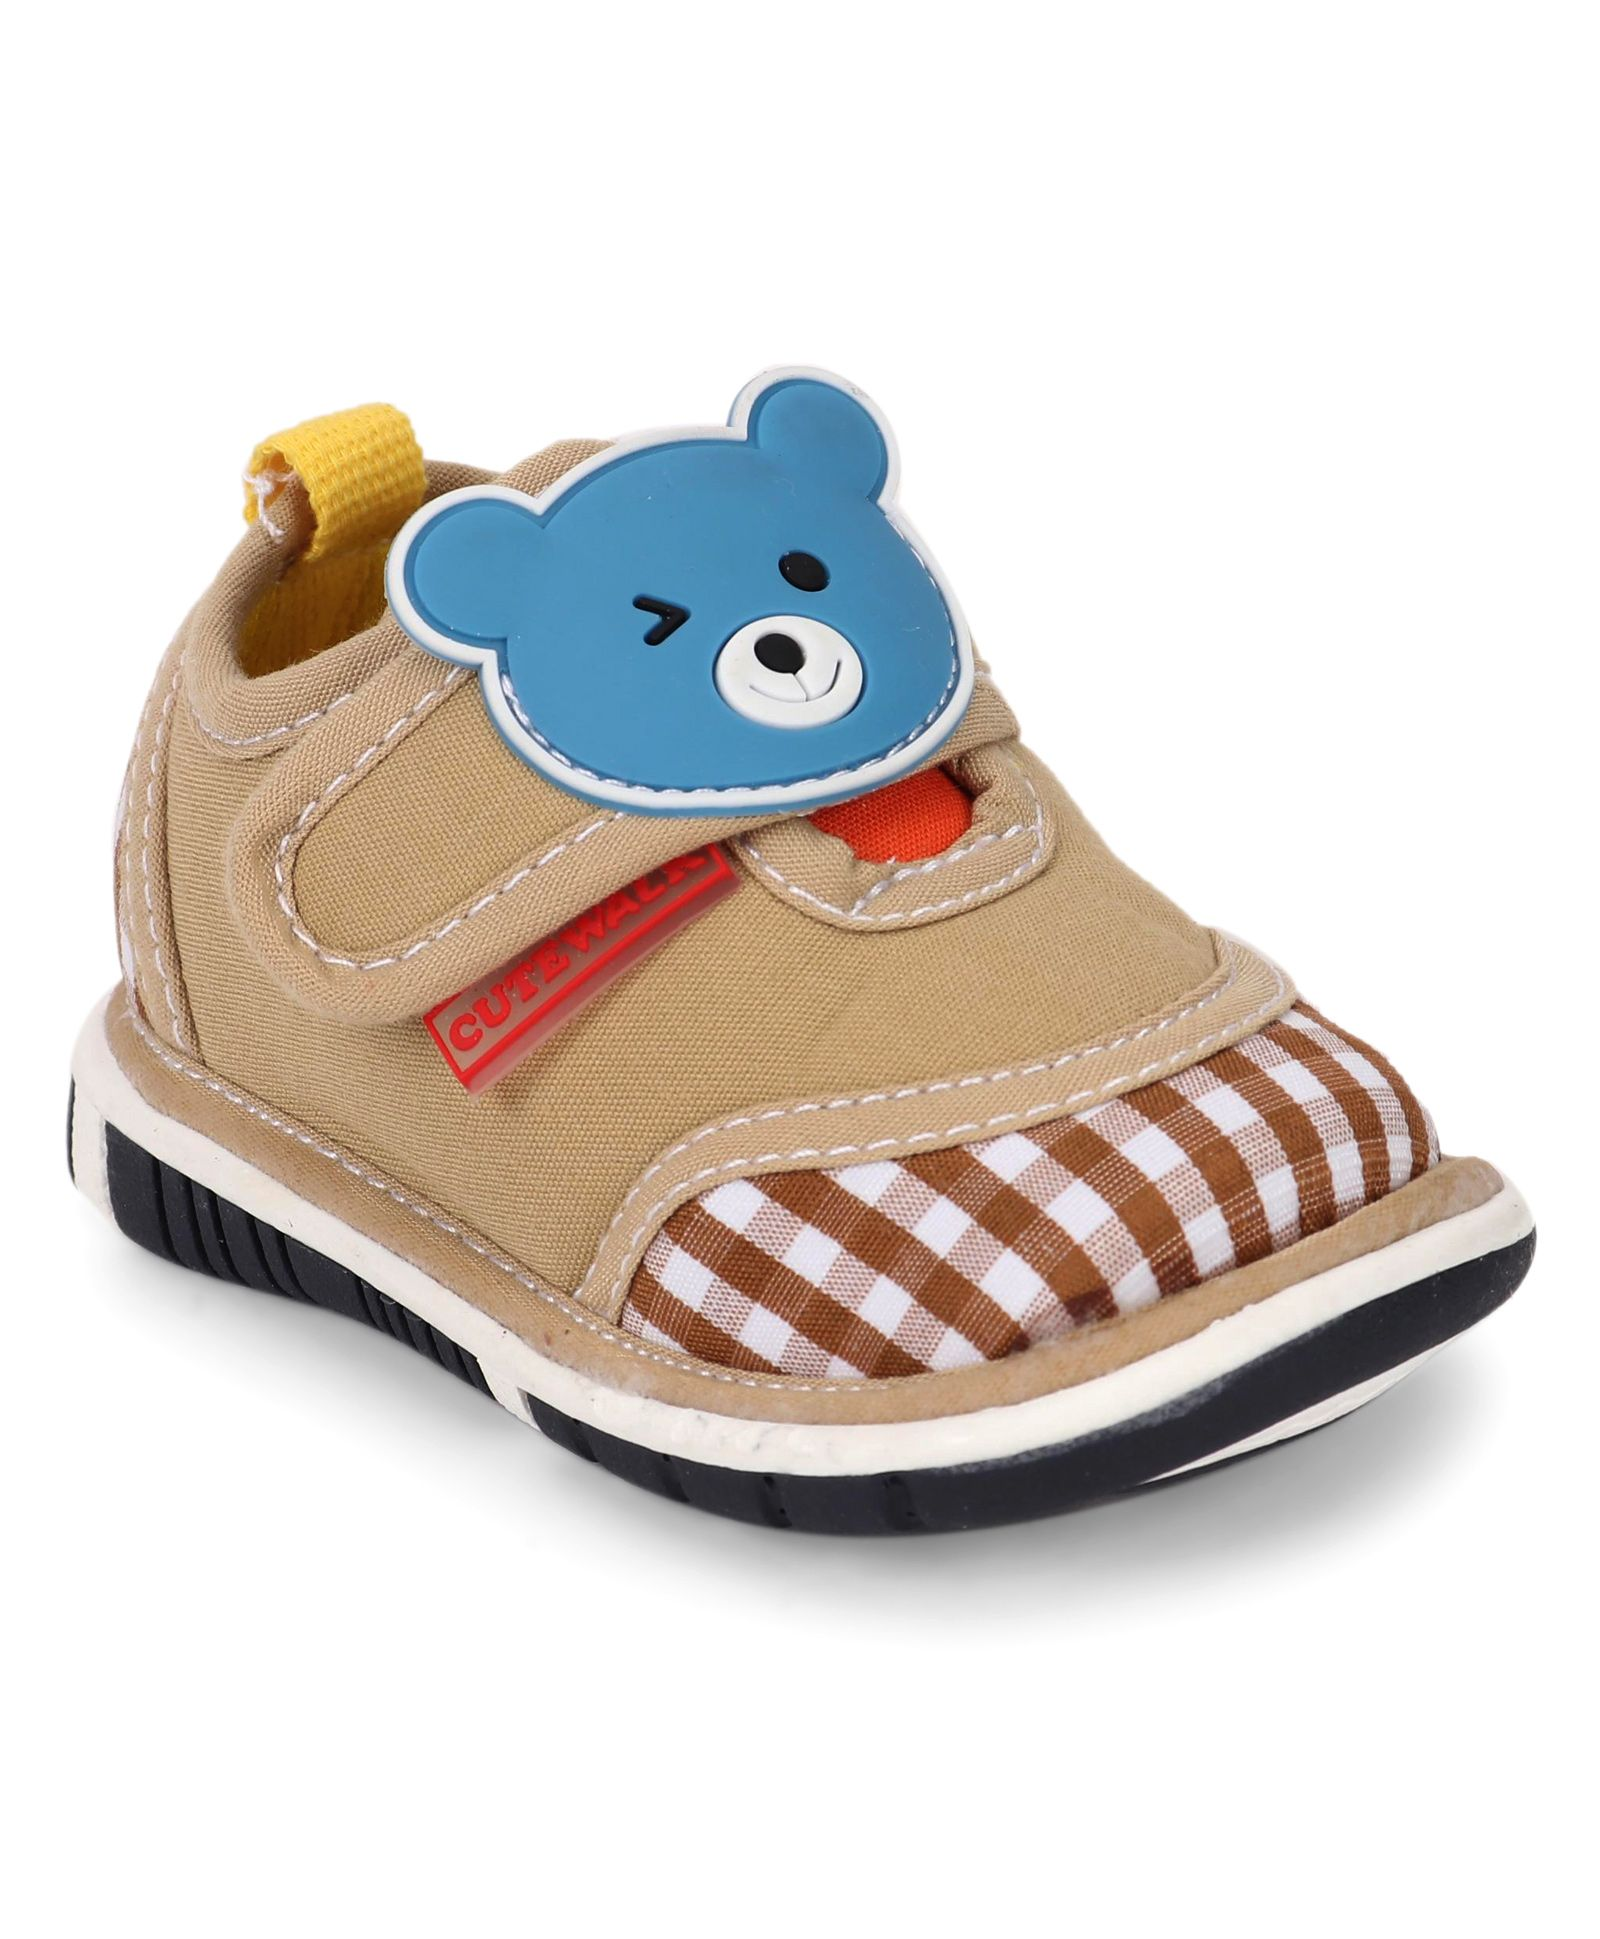 Walk Wing Shoes Price In India